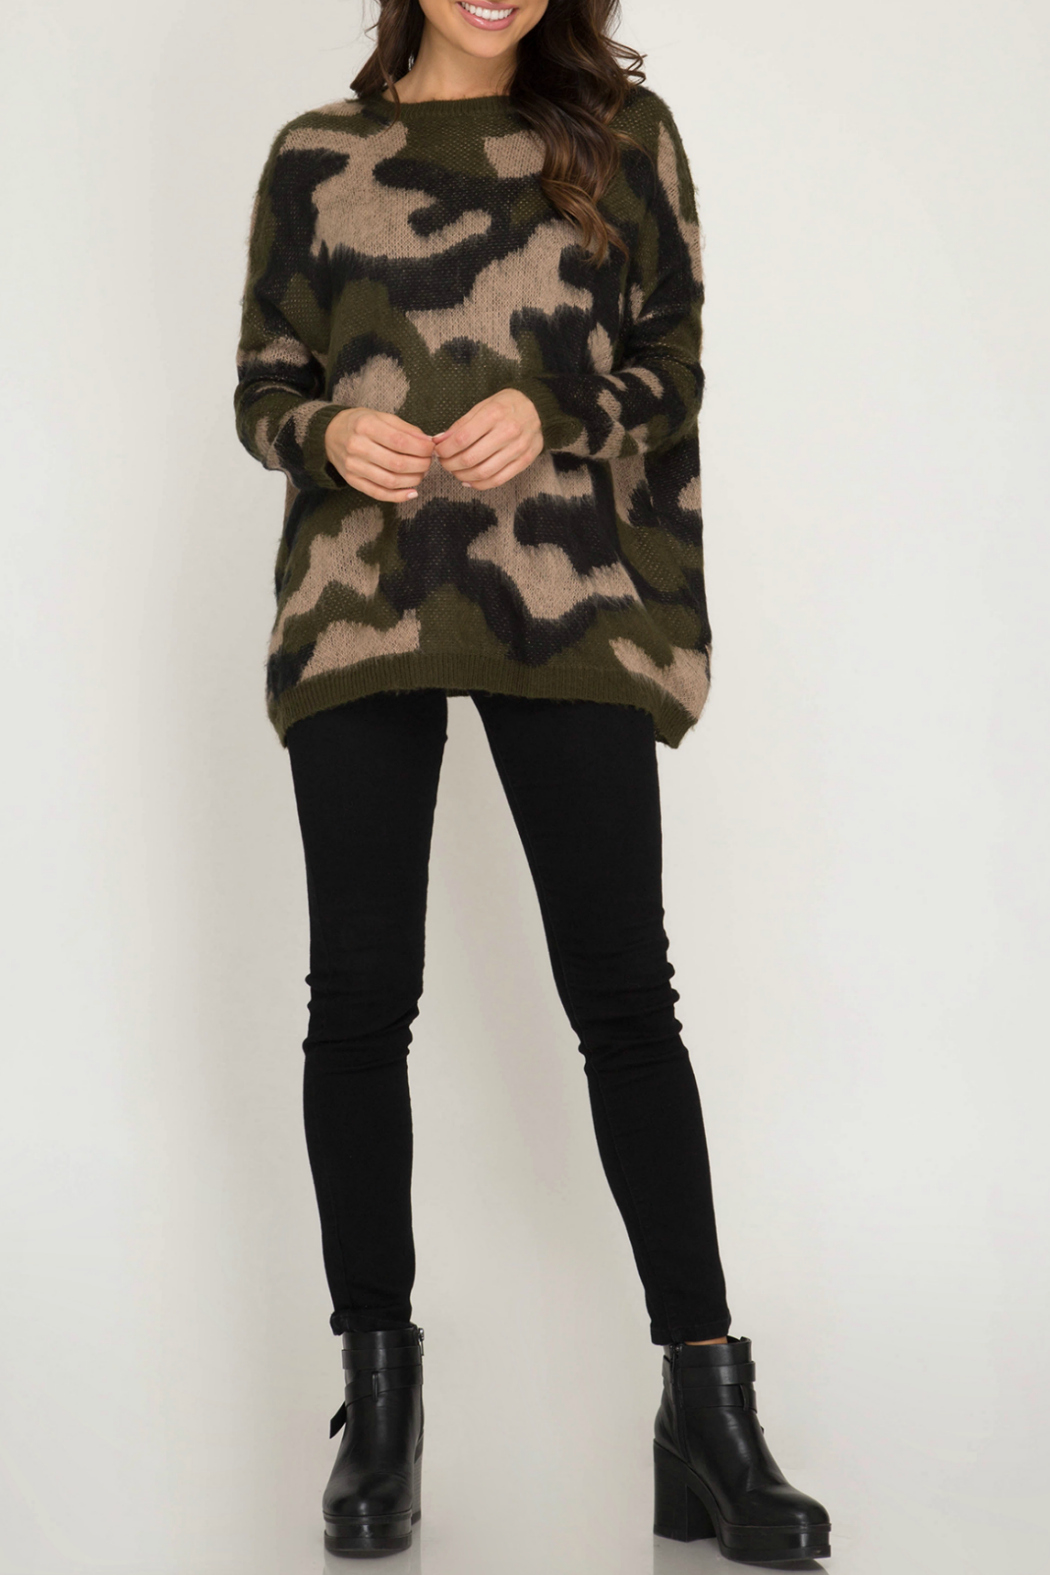 She & Sky  Camo Fuzzy Pullover Sweater - Side Cropped Image